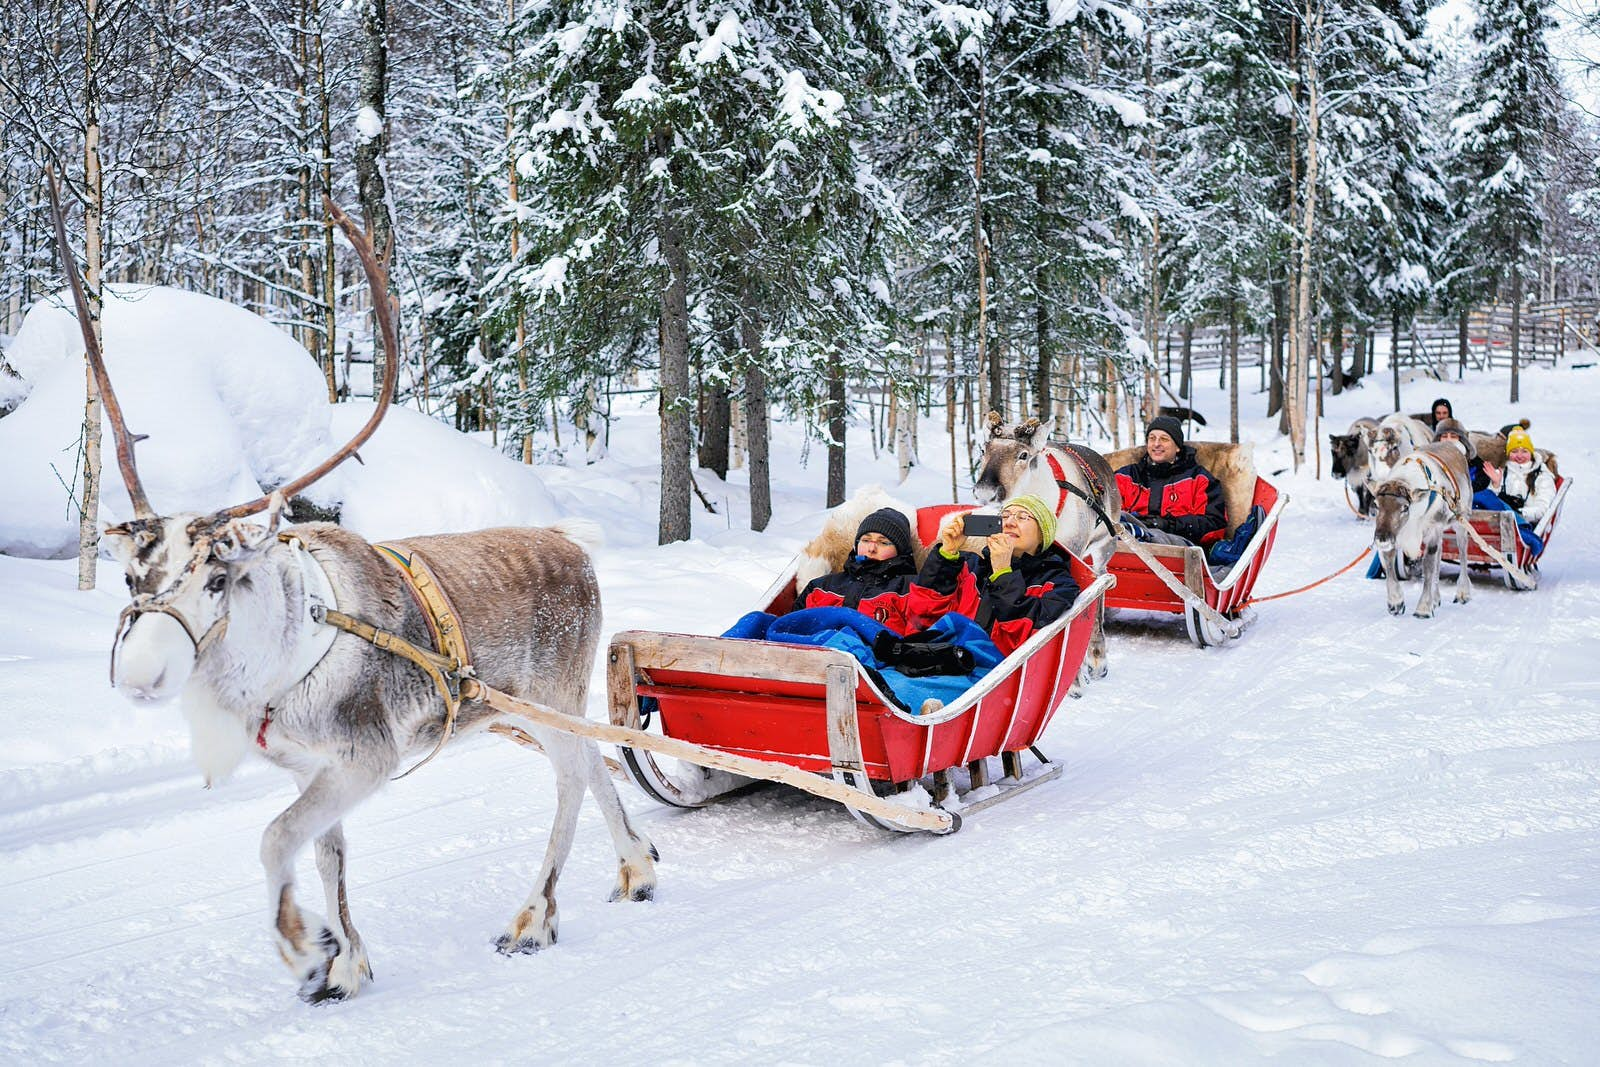 Christmas Vacation Deals 2021 Europe Top 10 Winter Destinations In Europe Lonely Planet